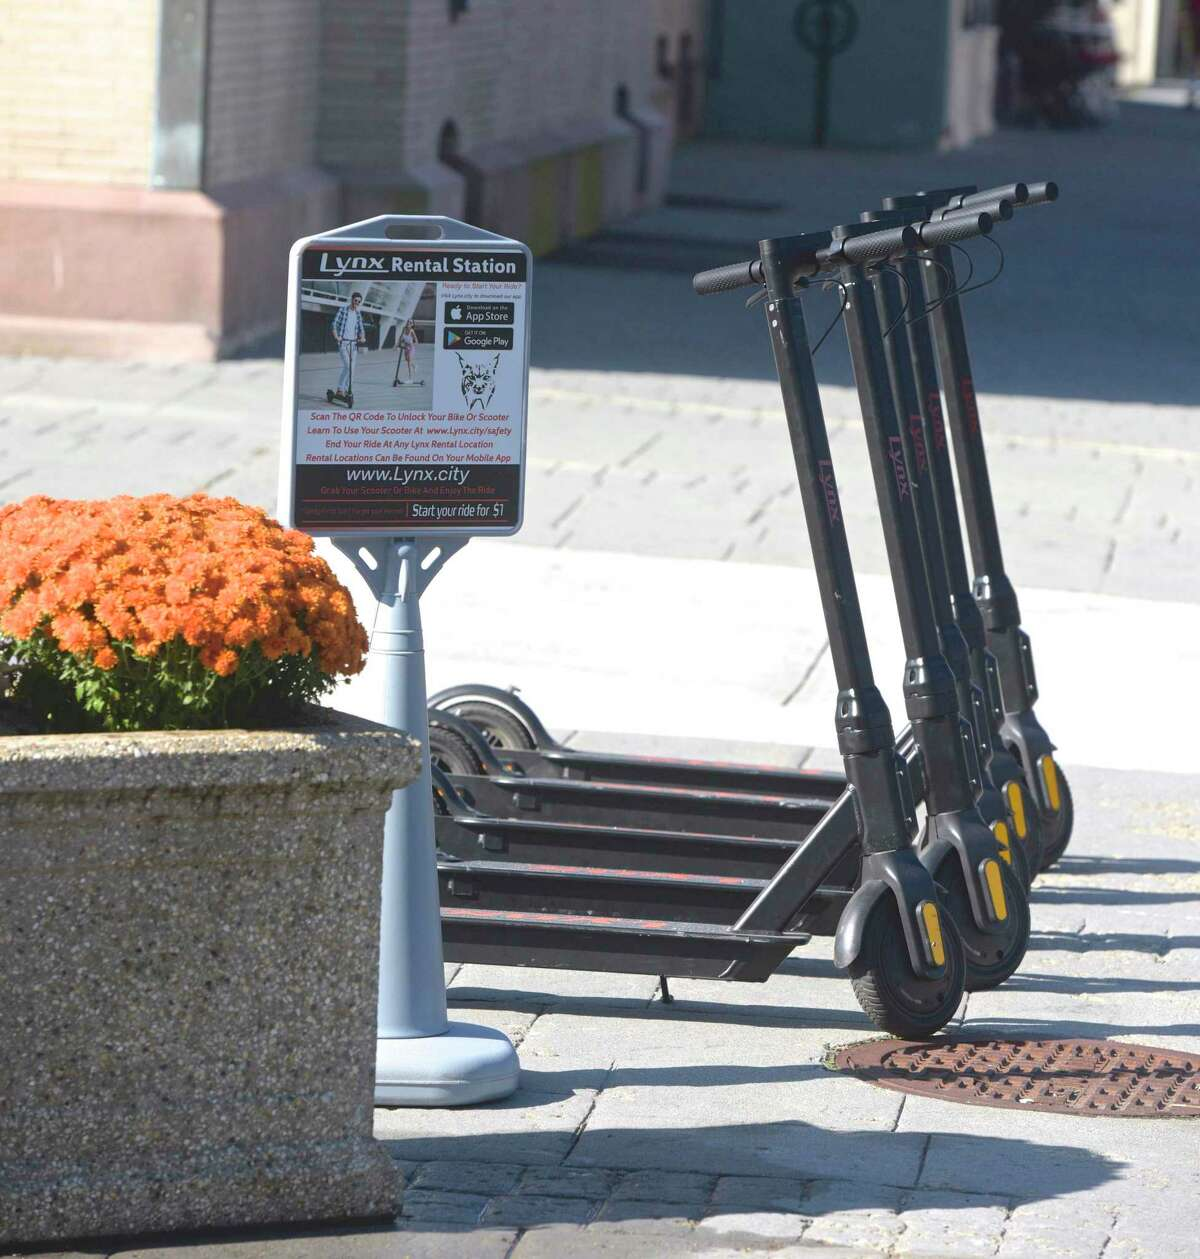 Scooters available for rent on the corner of Main & Bank Street. Scooters can be rented through an Apple or Google app. Saturday, September 28, 2019, in New Milford, Conn.